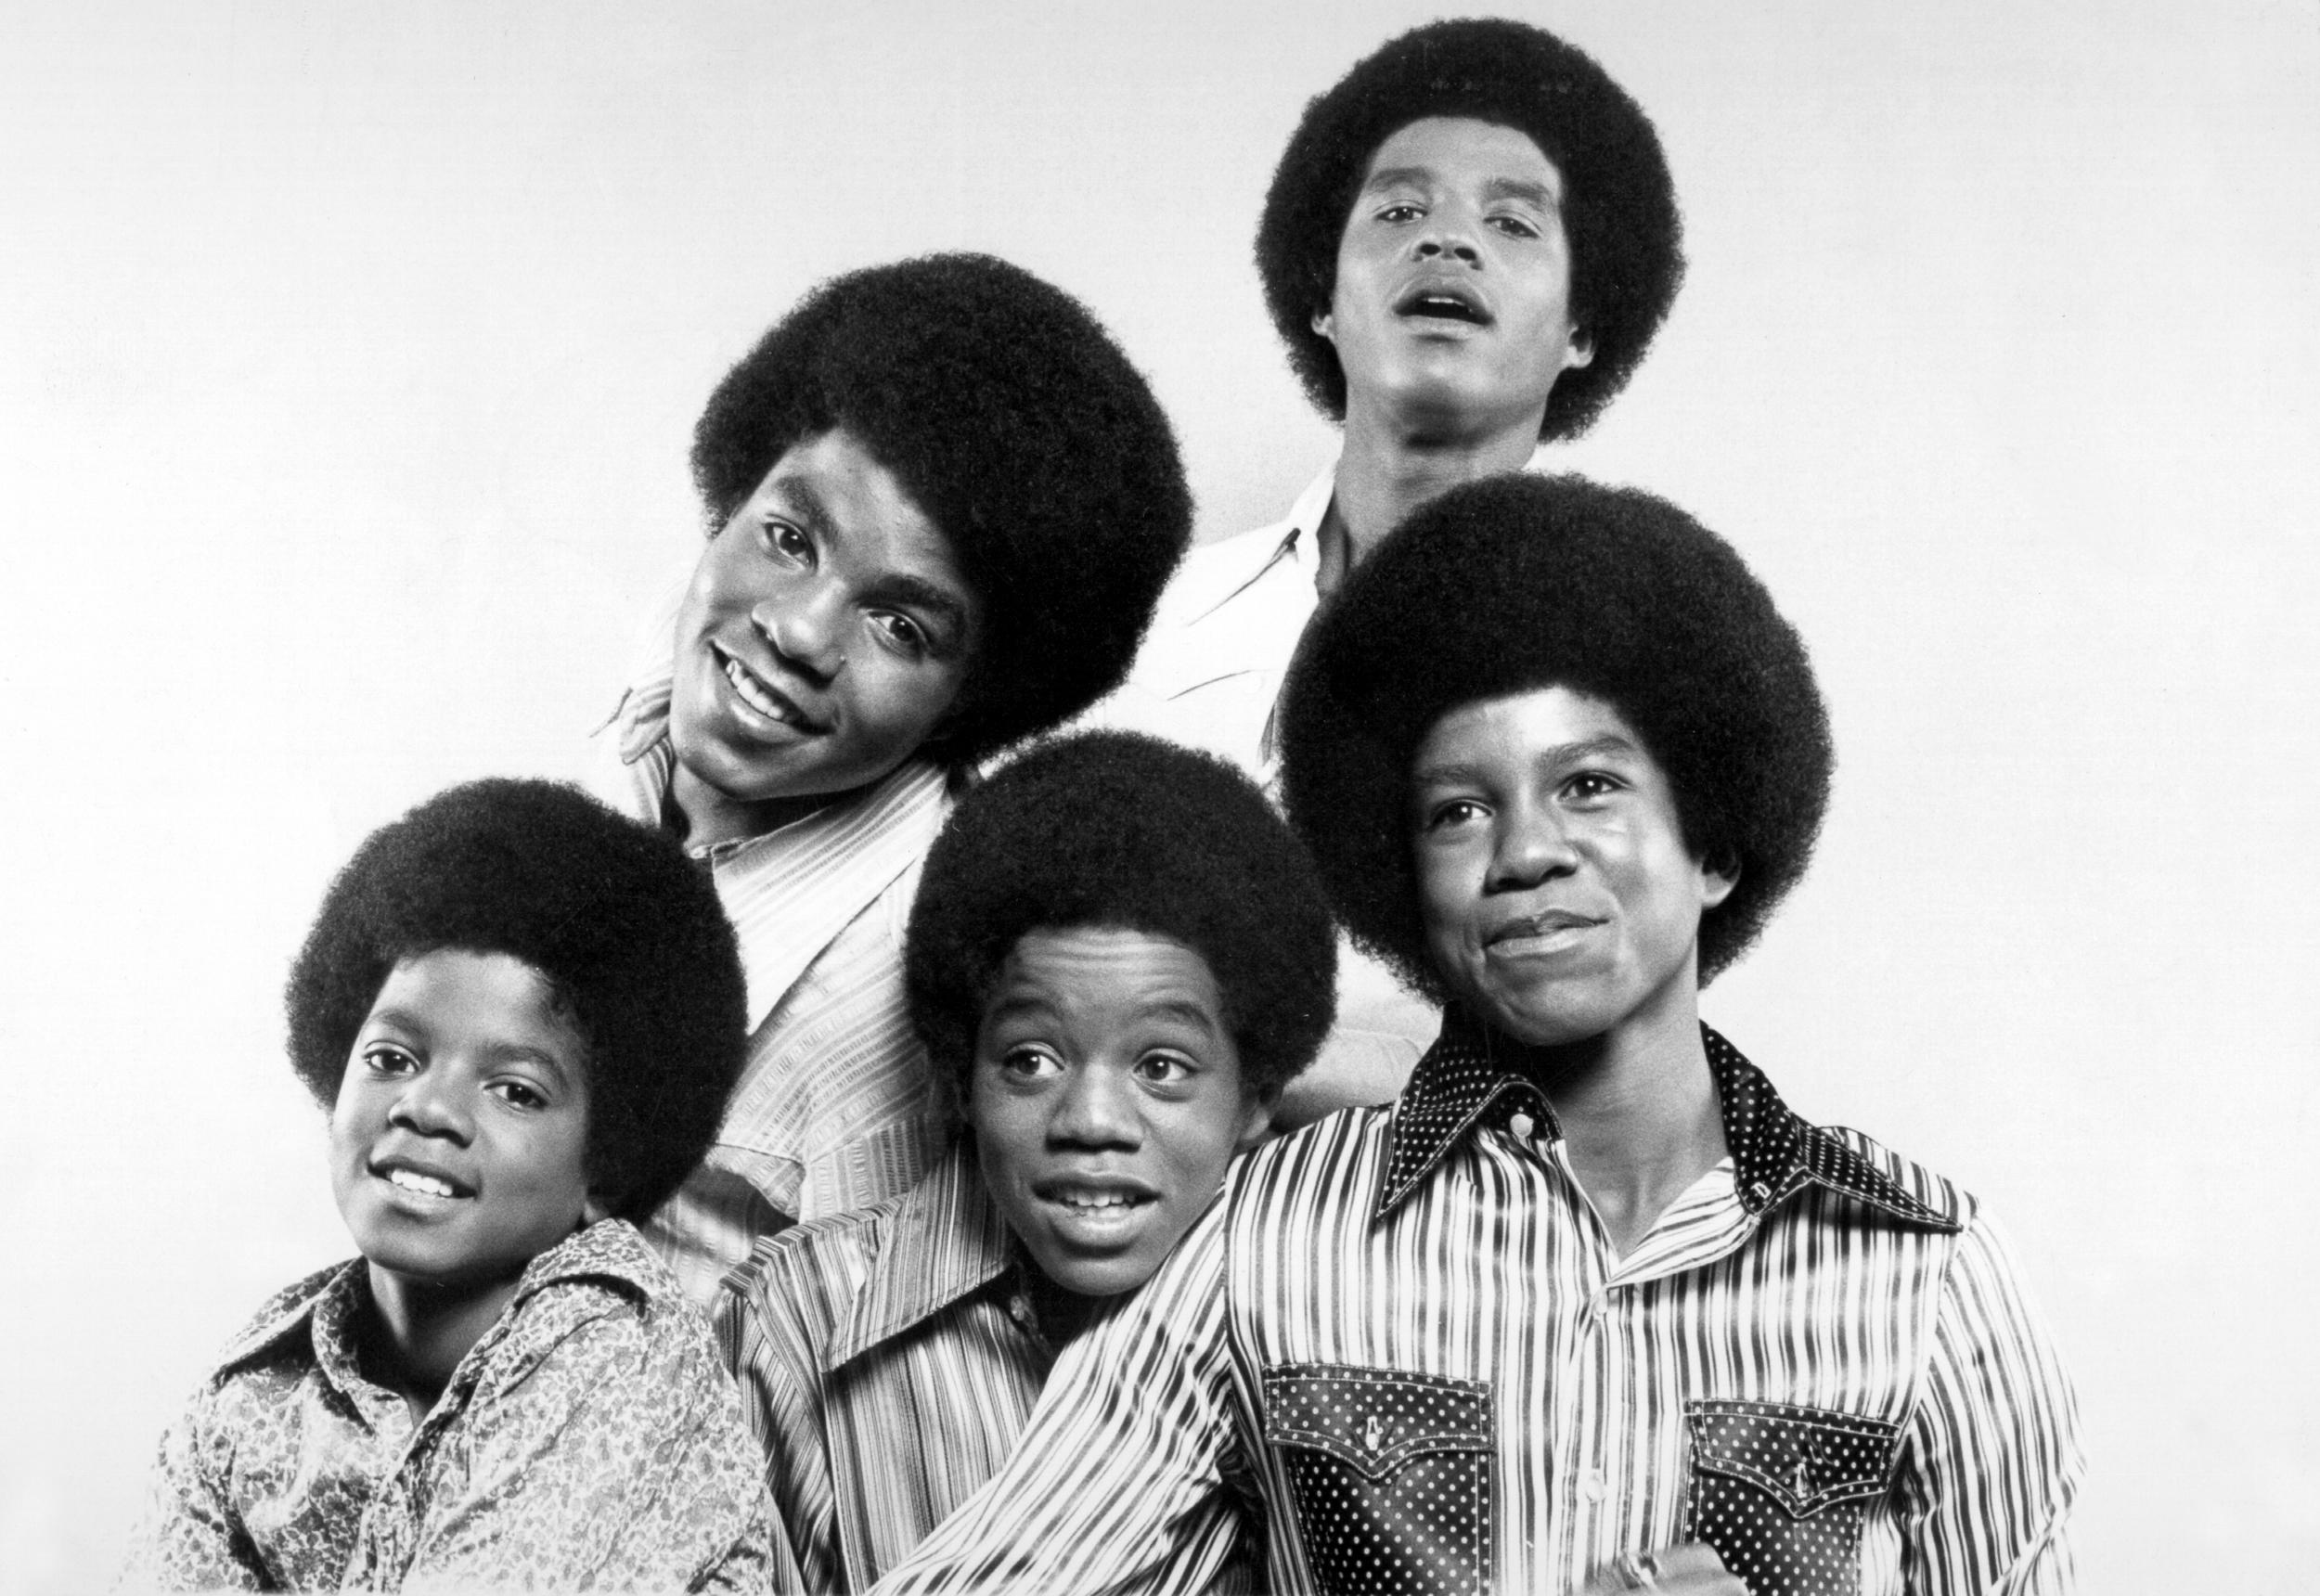 CIRCA 1969:  R&B quintet 'Jackson 5' pose for a portrait in circa 1969. Clockwise from bottom left: Michael Jackson, Tito Jackson, Jackie Jackson, Jermaine Jackson, Marlon Jackson. (Photo by Michael Ochs Archives/Getty Images)